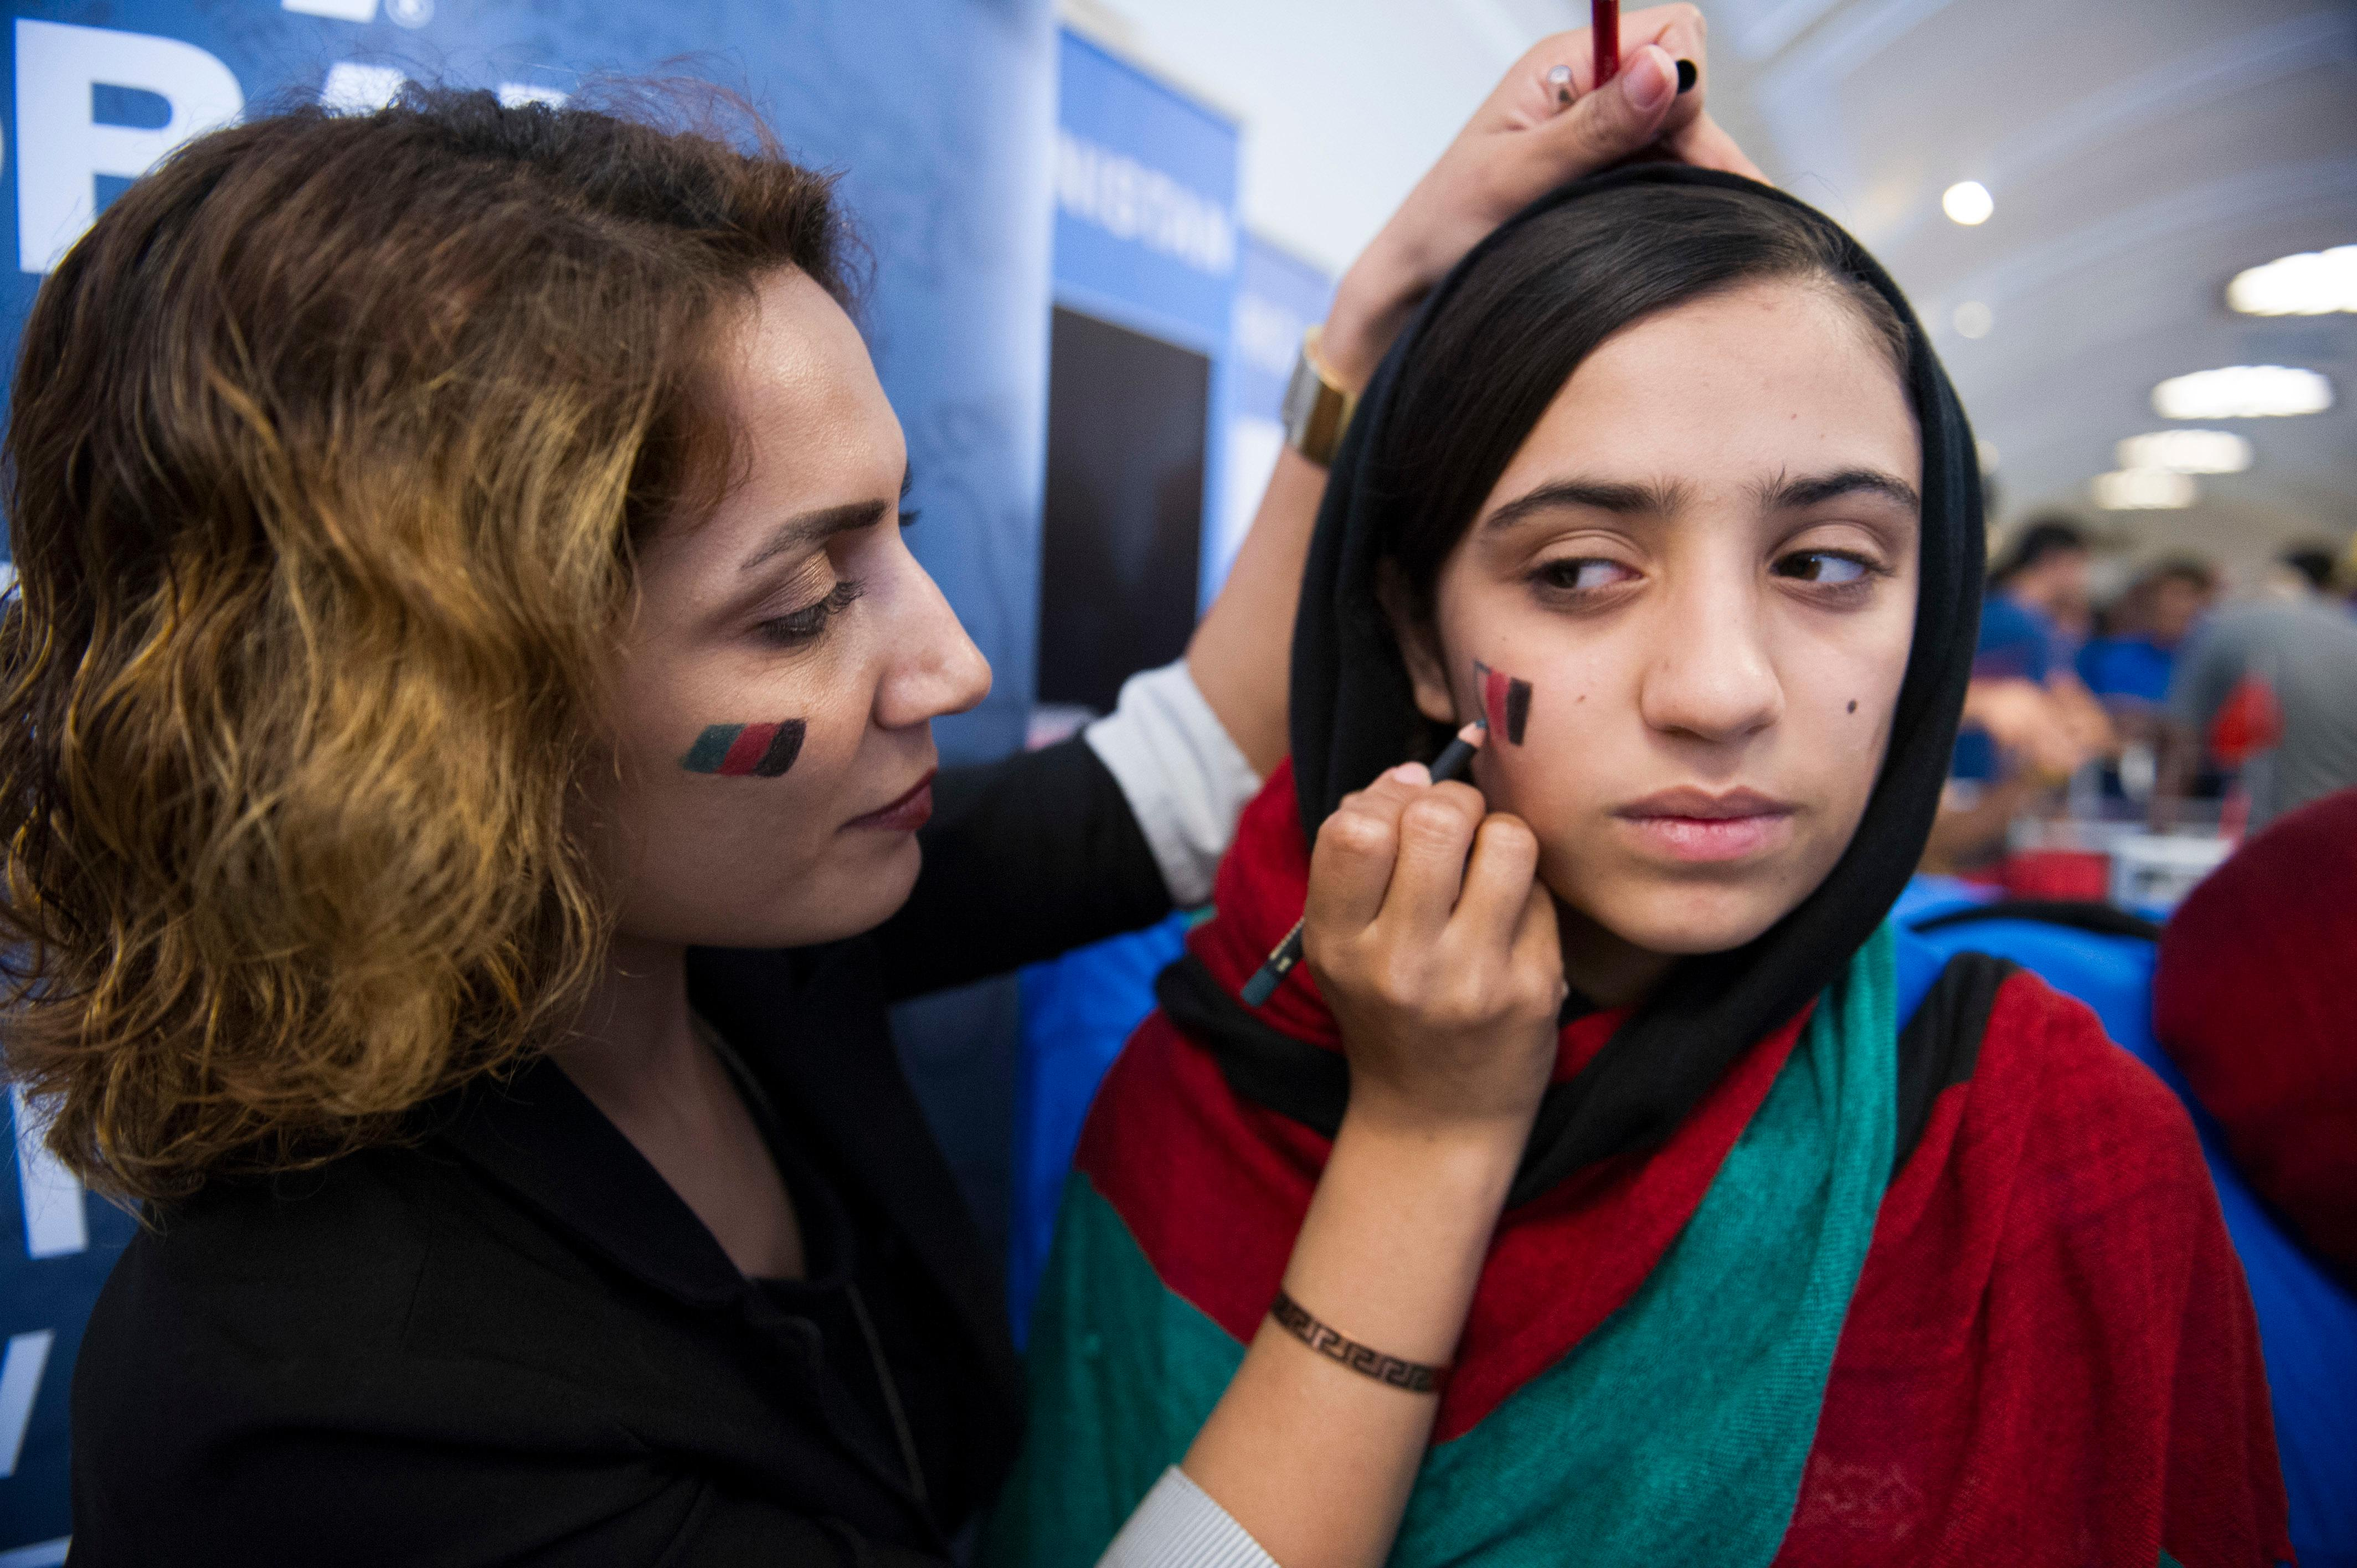 Afghanistan team member Somaya Faryuqi, right, has the flag of Afghanistan drawn on her cheek prior to the opening ceremony for the FIRST Global Challenge 2017, in Washington, Sunday, July 16, 2017. They will be competing against entrants from more than 150 countries in the FIRST Global Challenge. It's the first annual robotics competition designed to encourage youths to pursue careers in math and science.  (AP Photo/Cliff Owen)